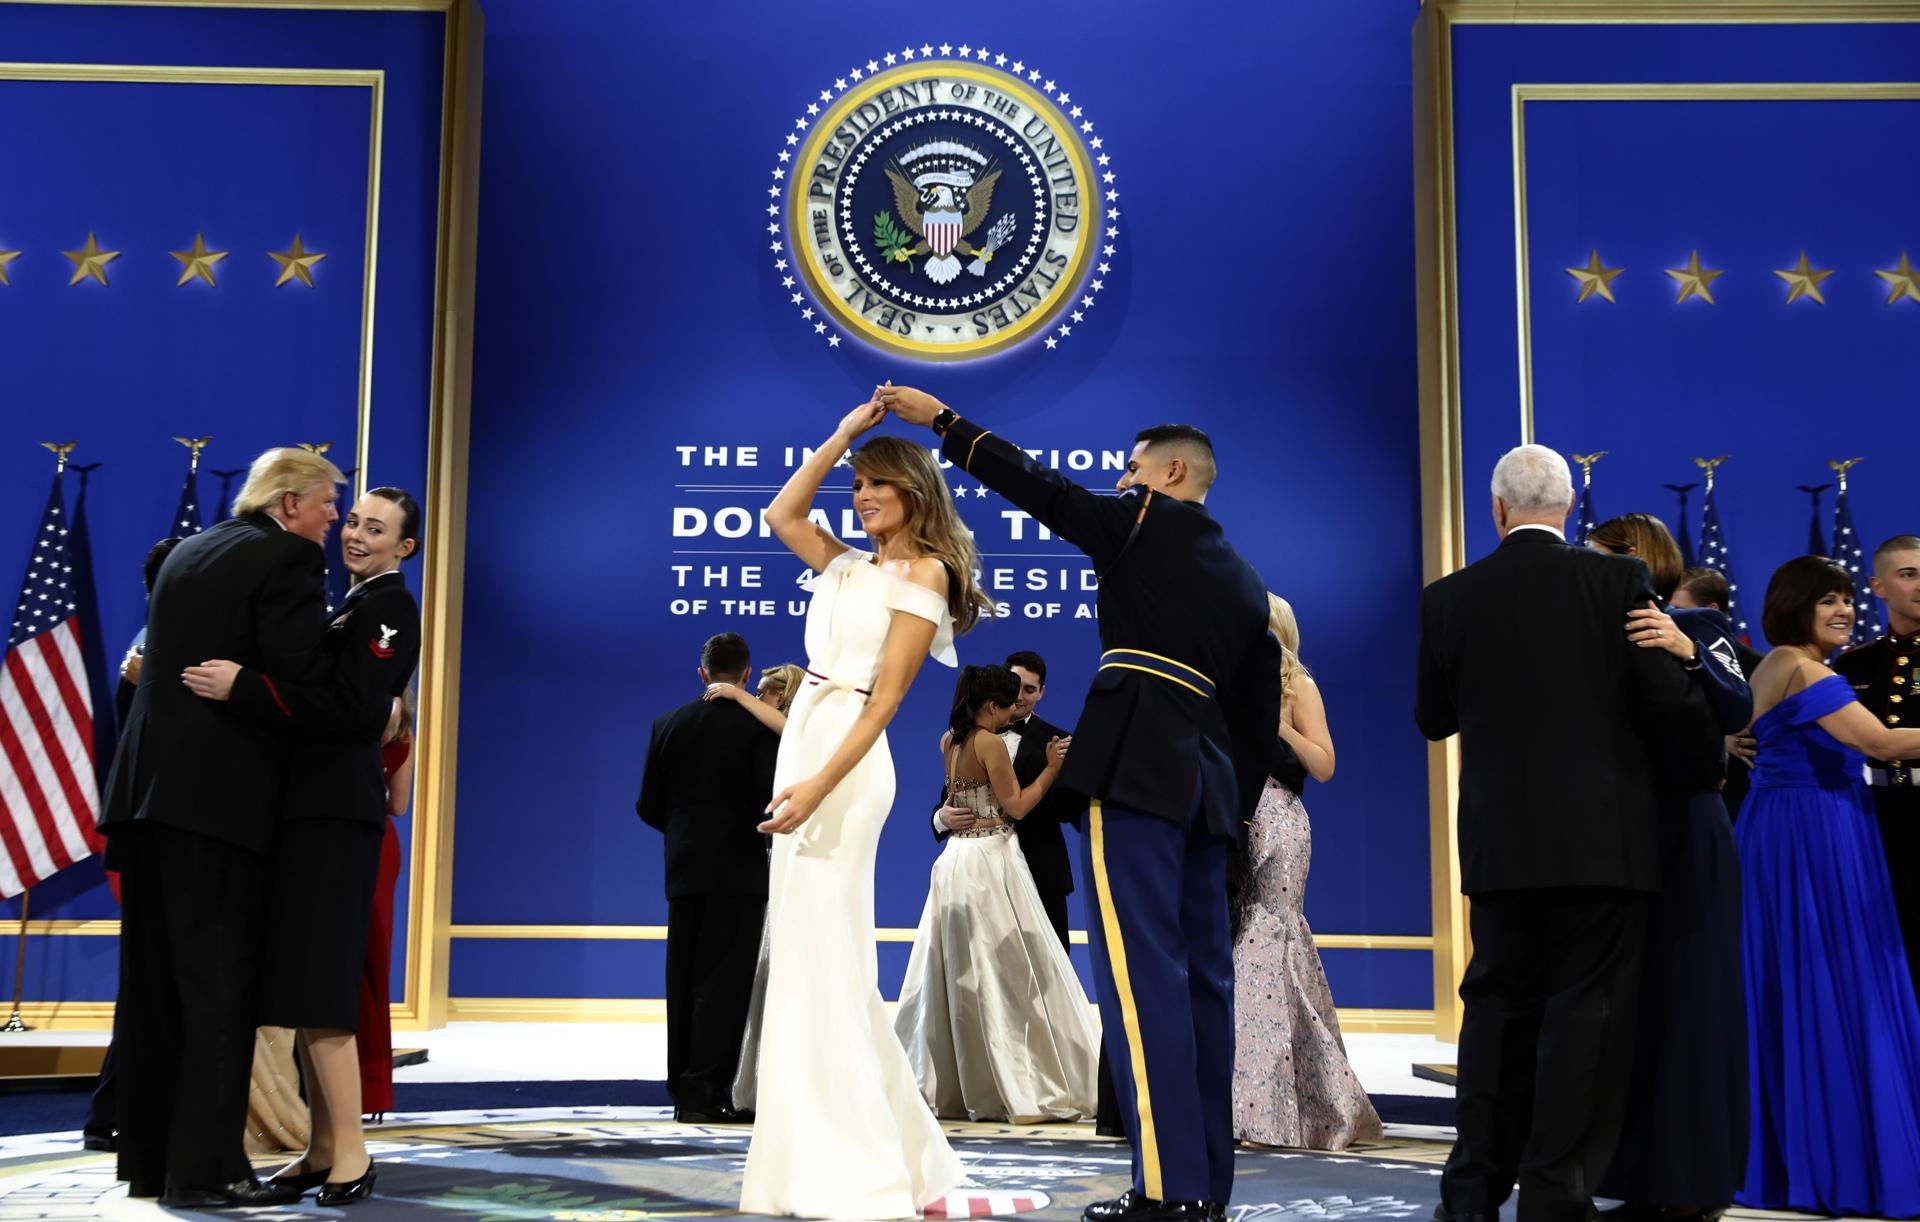 The latest trumps dance with military members at final ball daily mail - President Donald Trump Left Dances With Navy Petty Officer 2nd Class Catherine Cartmell As